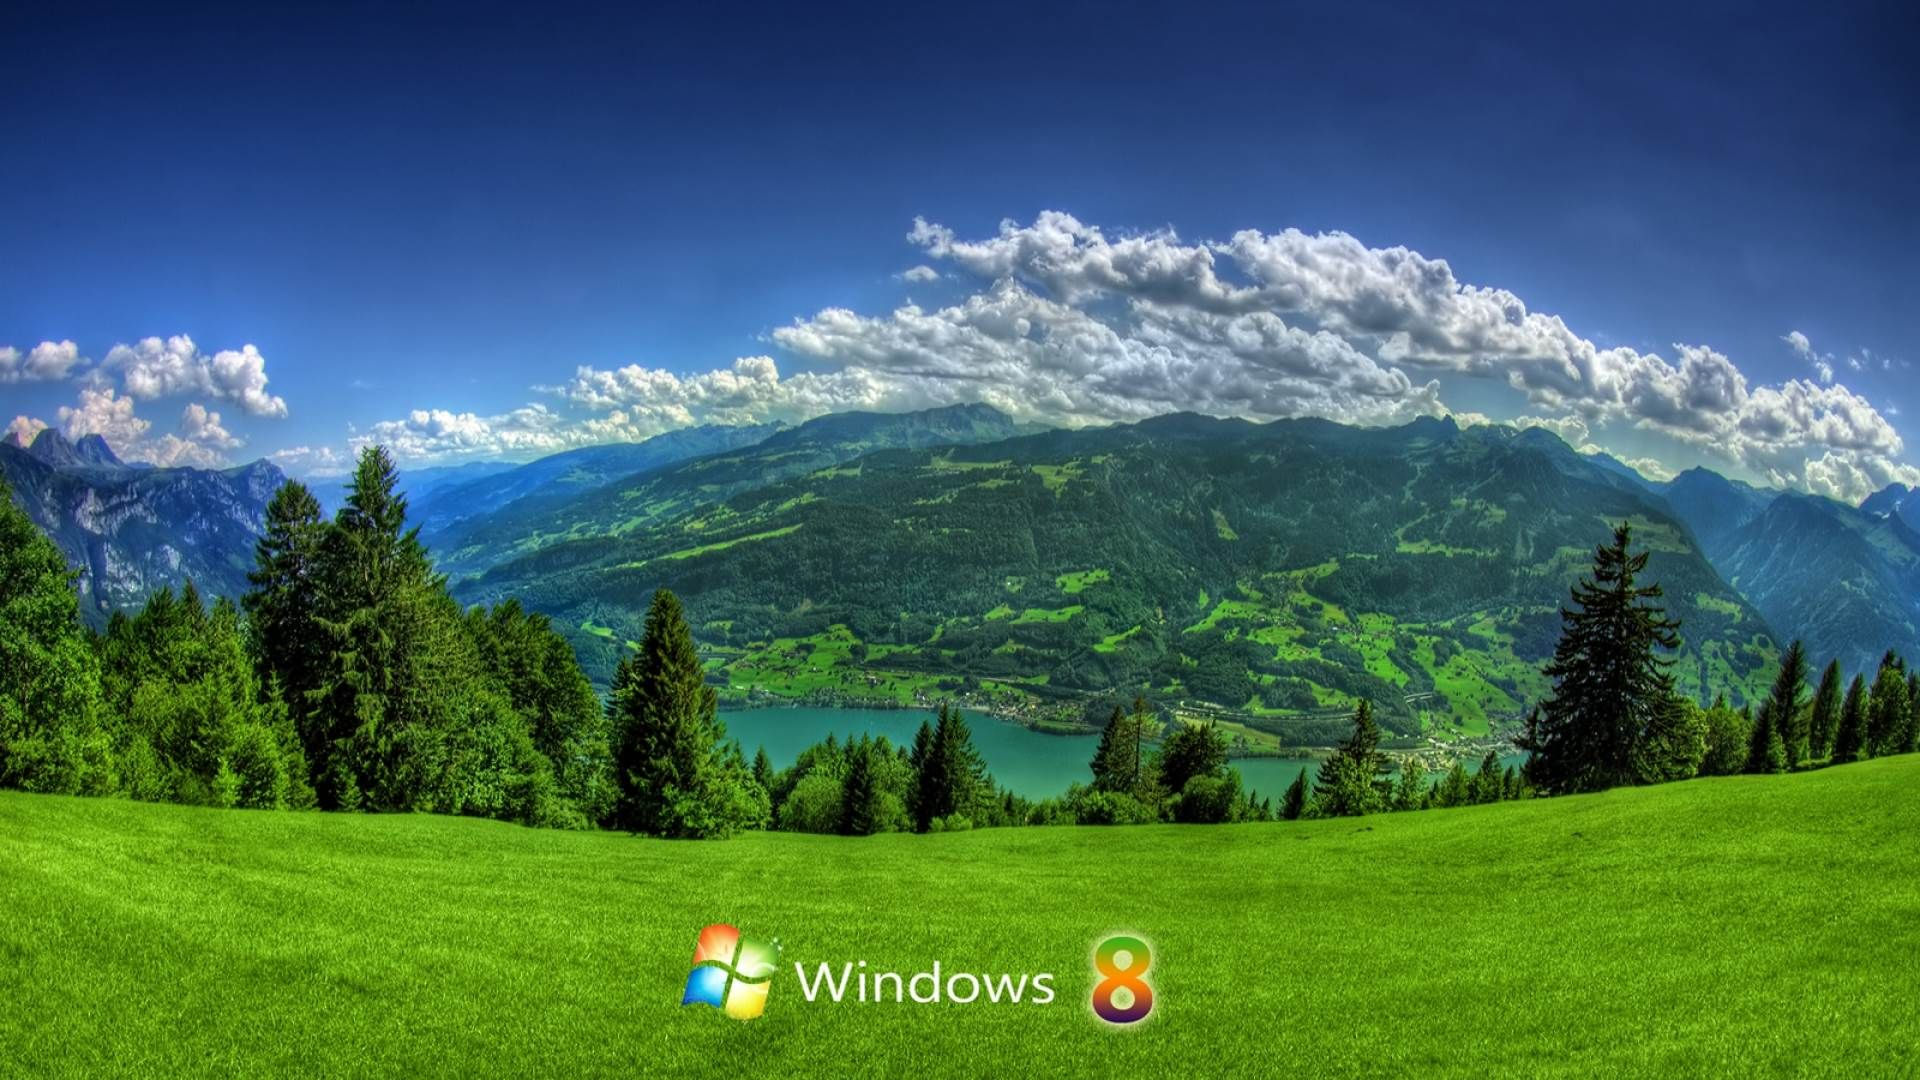 Windows Backgrounds Wallpapers Group  1920×1080 Wallpapers Windows | Adorable Wallpapers